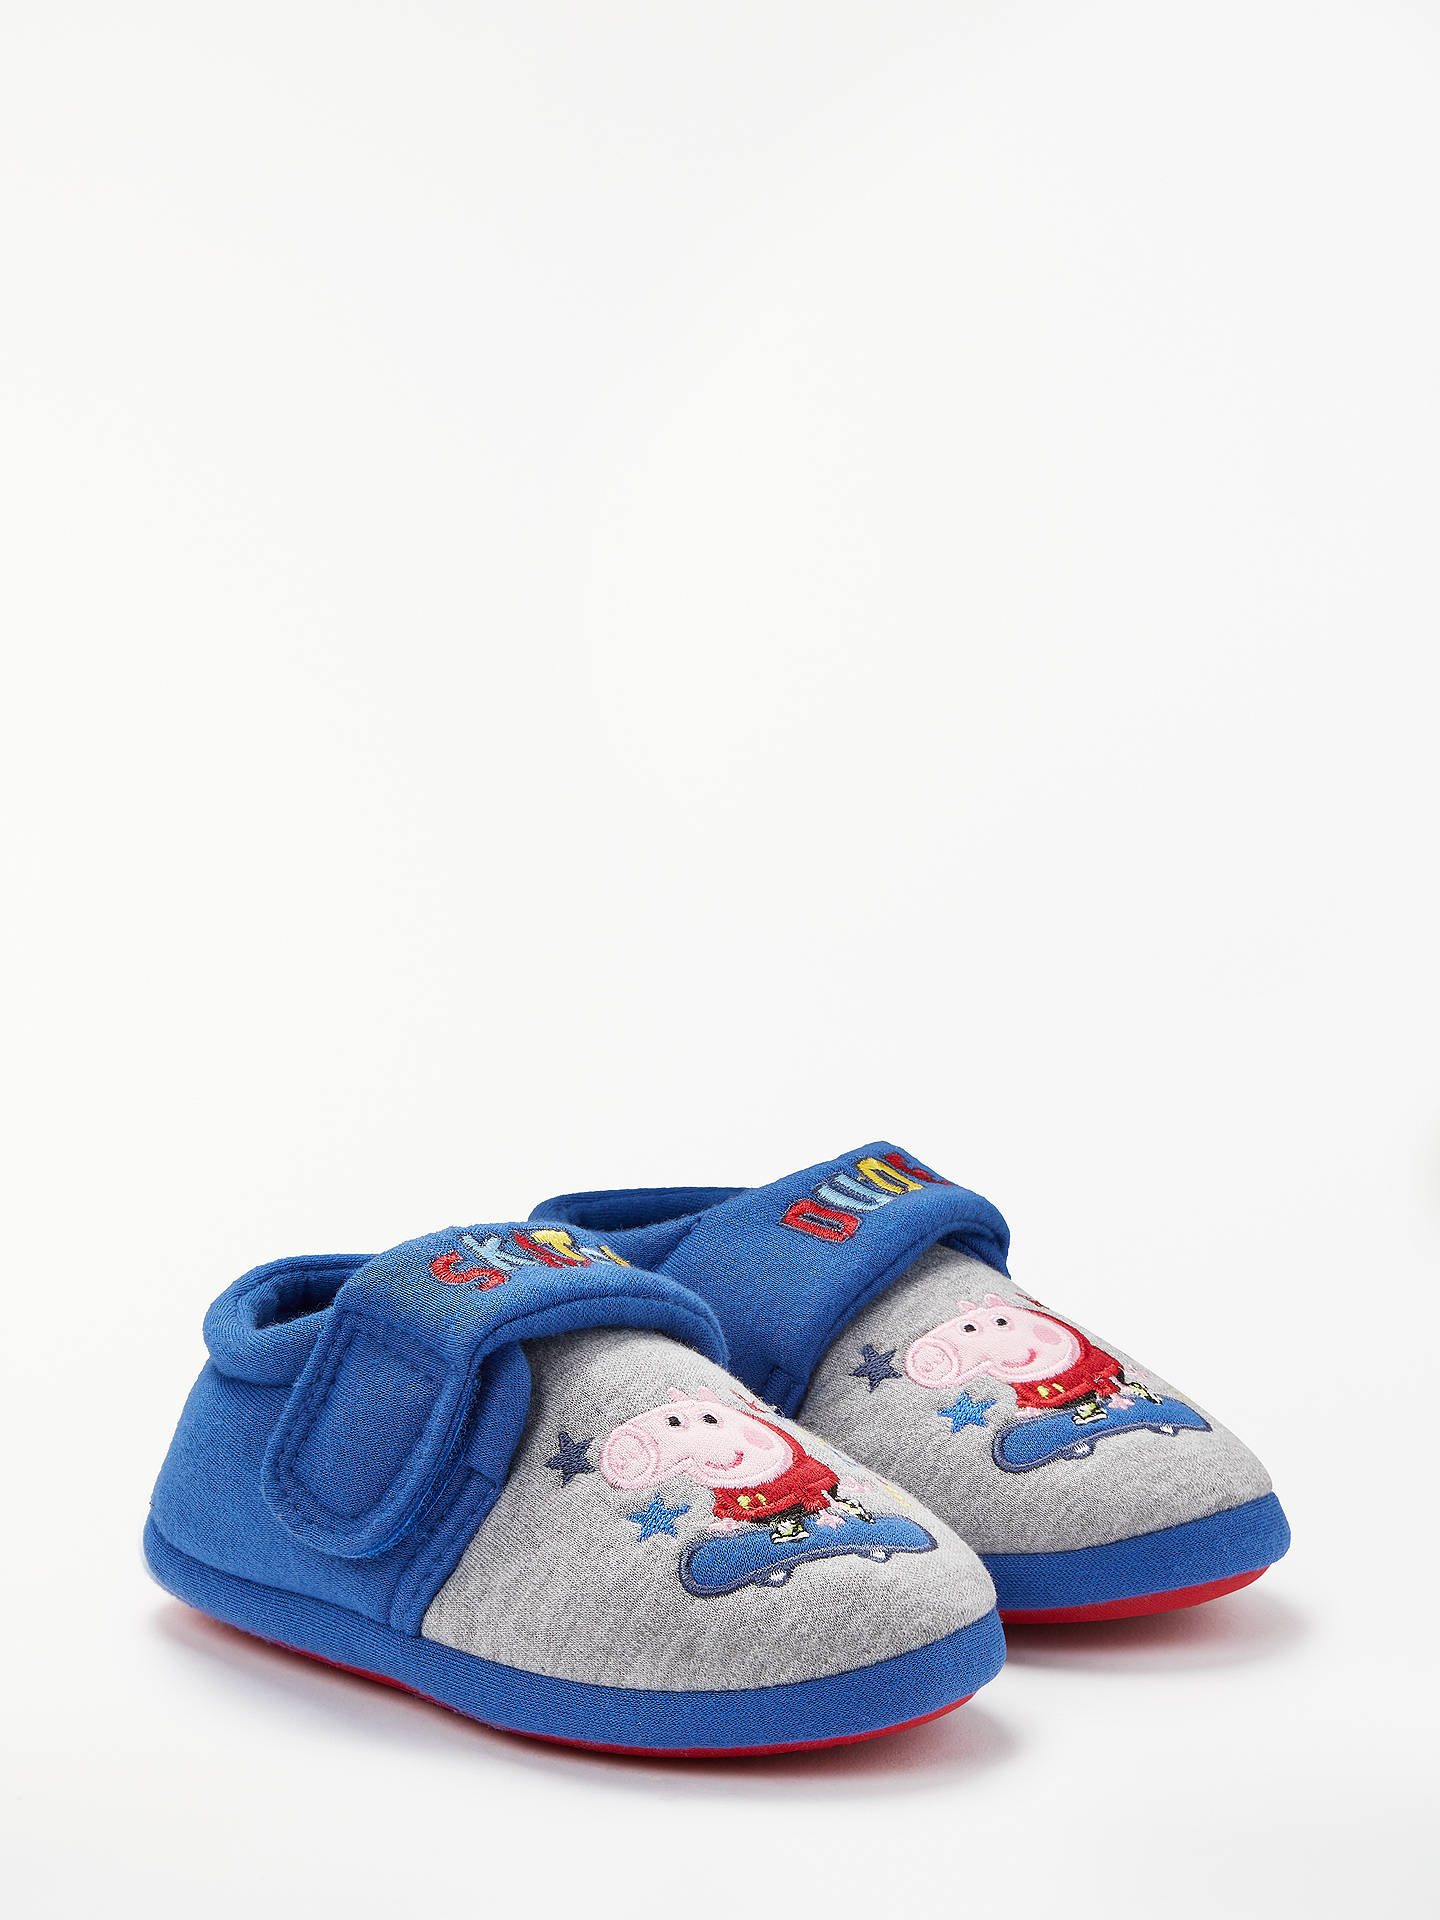 a45d301328c Buy Peppa Pig Children s Skater George Slippers